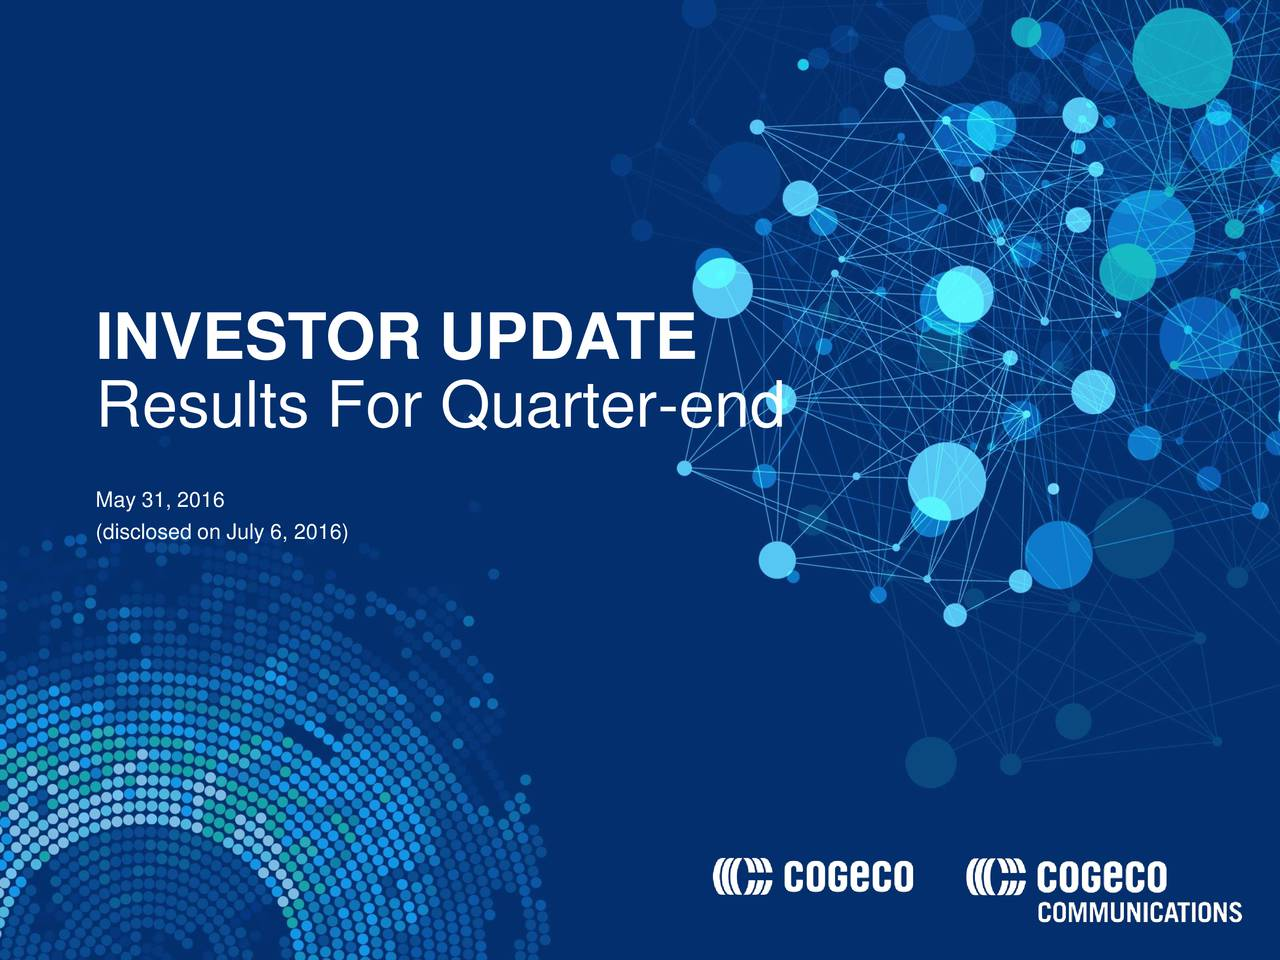 Results For Quarter-end (disclosed on July 6, 2016)